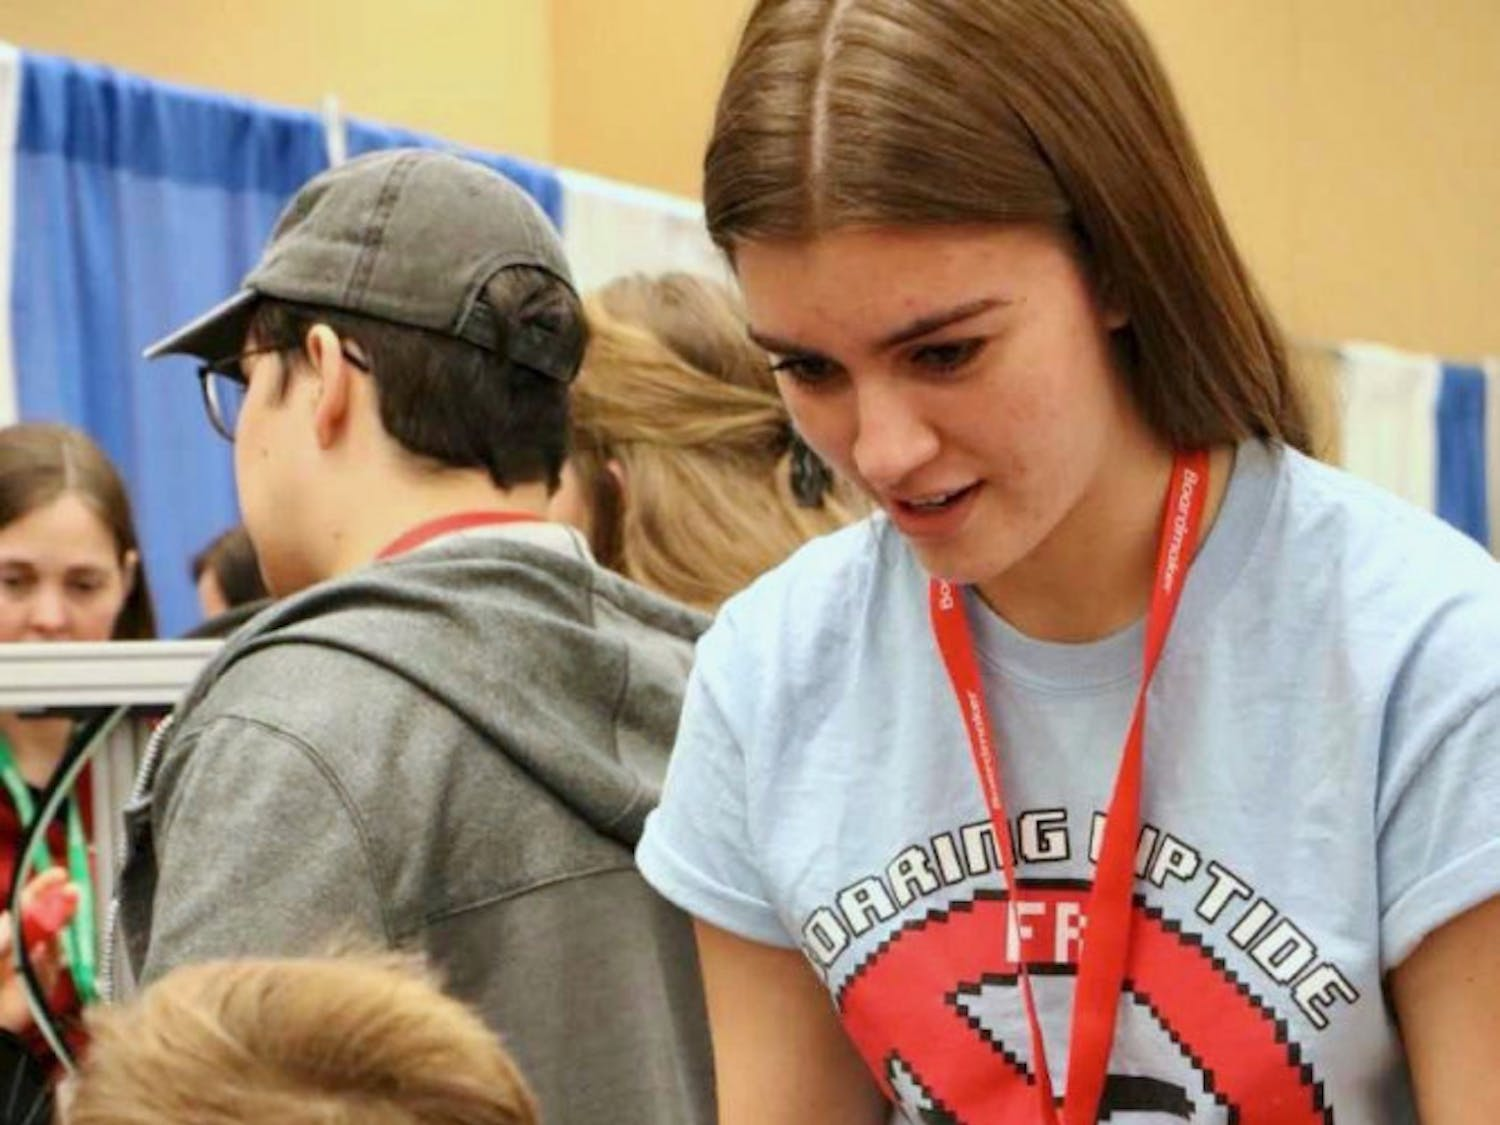 A student from P.K. Yonge Developmental Research School's First Robotics Club, 12th-grader Rebecca Schlafke, demonstrates how to use the club's adapted creations to a child at the Assistive Technology Industry Association Maker's Day on Saturday.